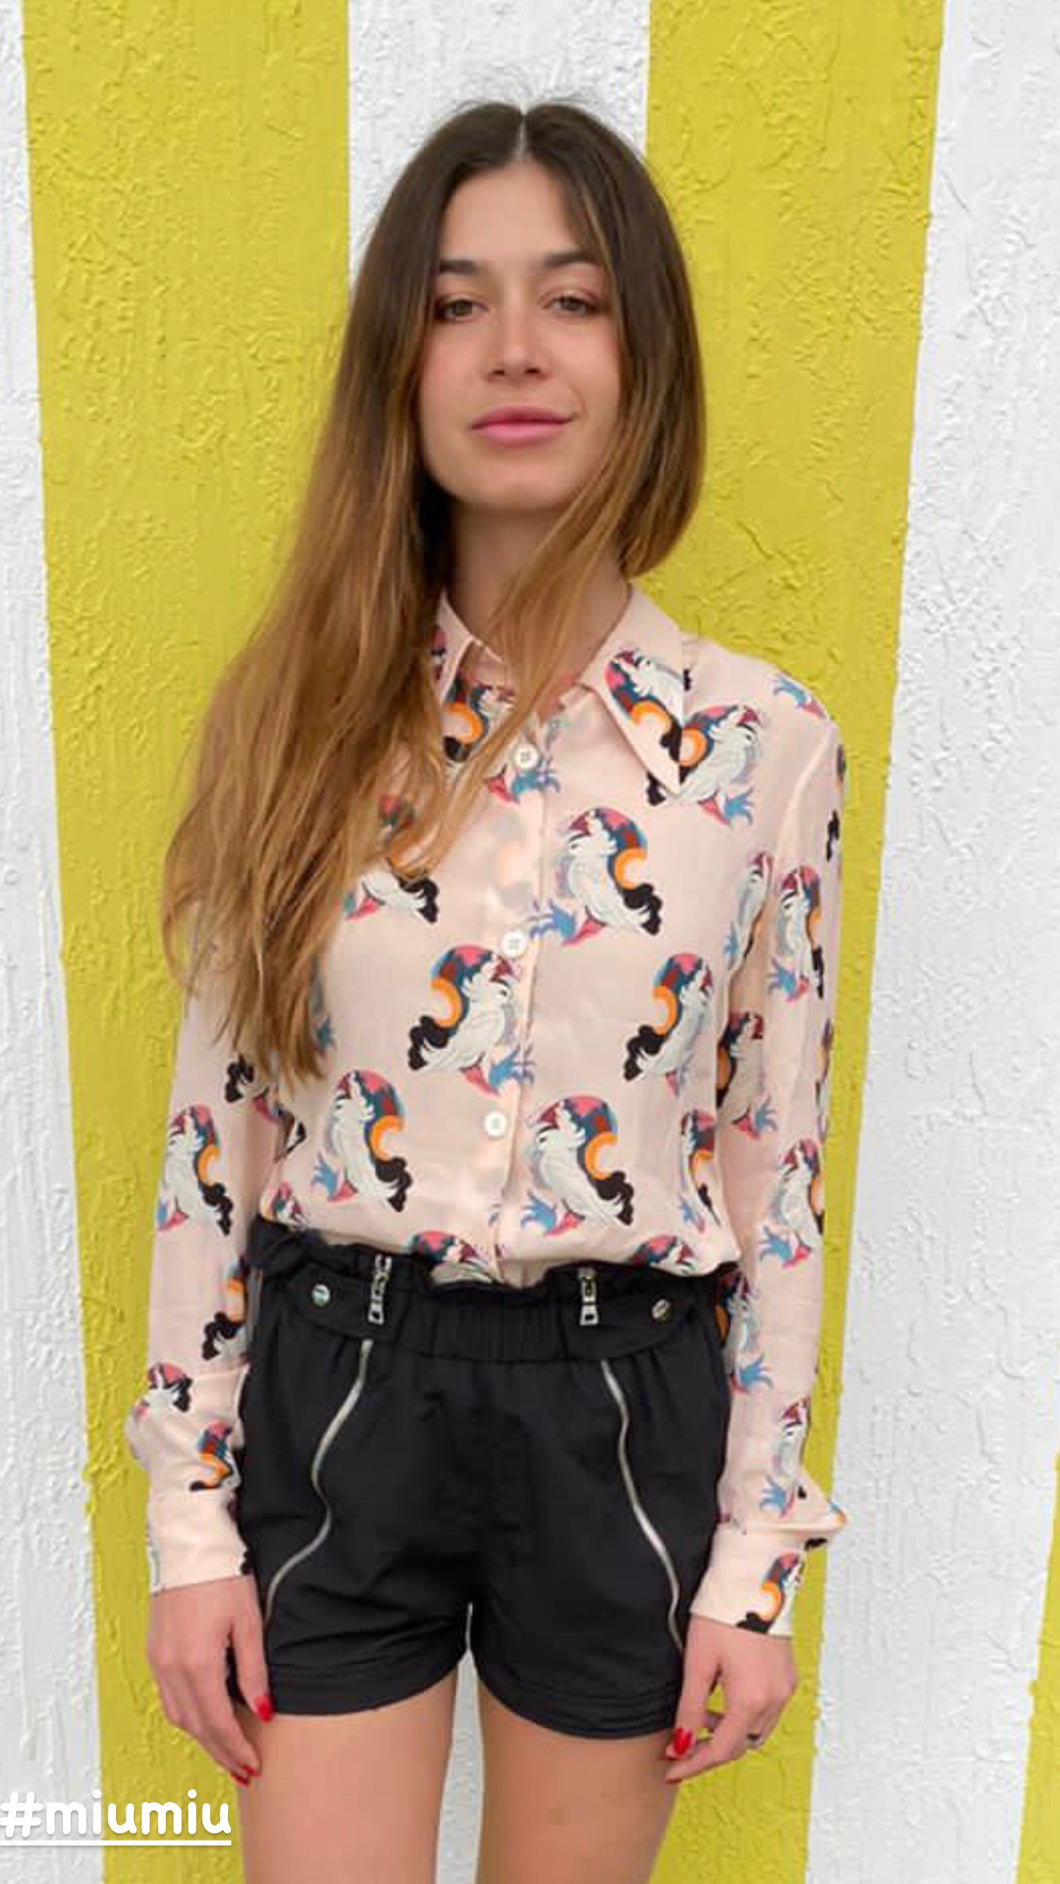 Miu Miu Silk Parrot Print Button-Up Top